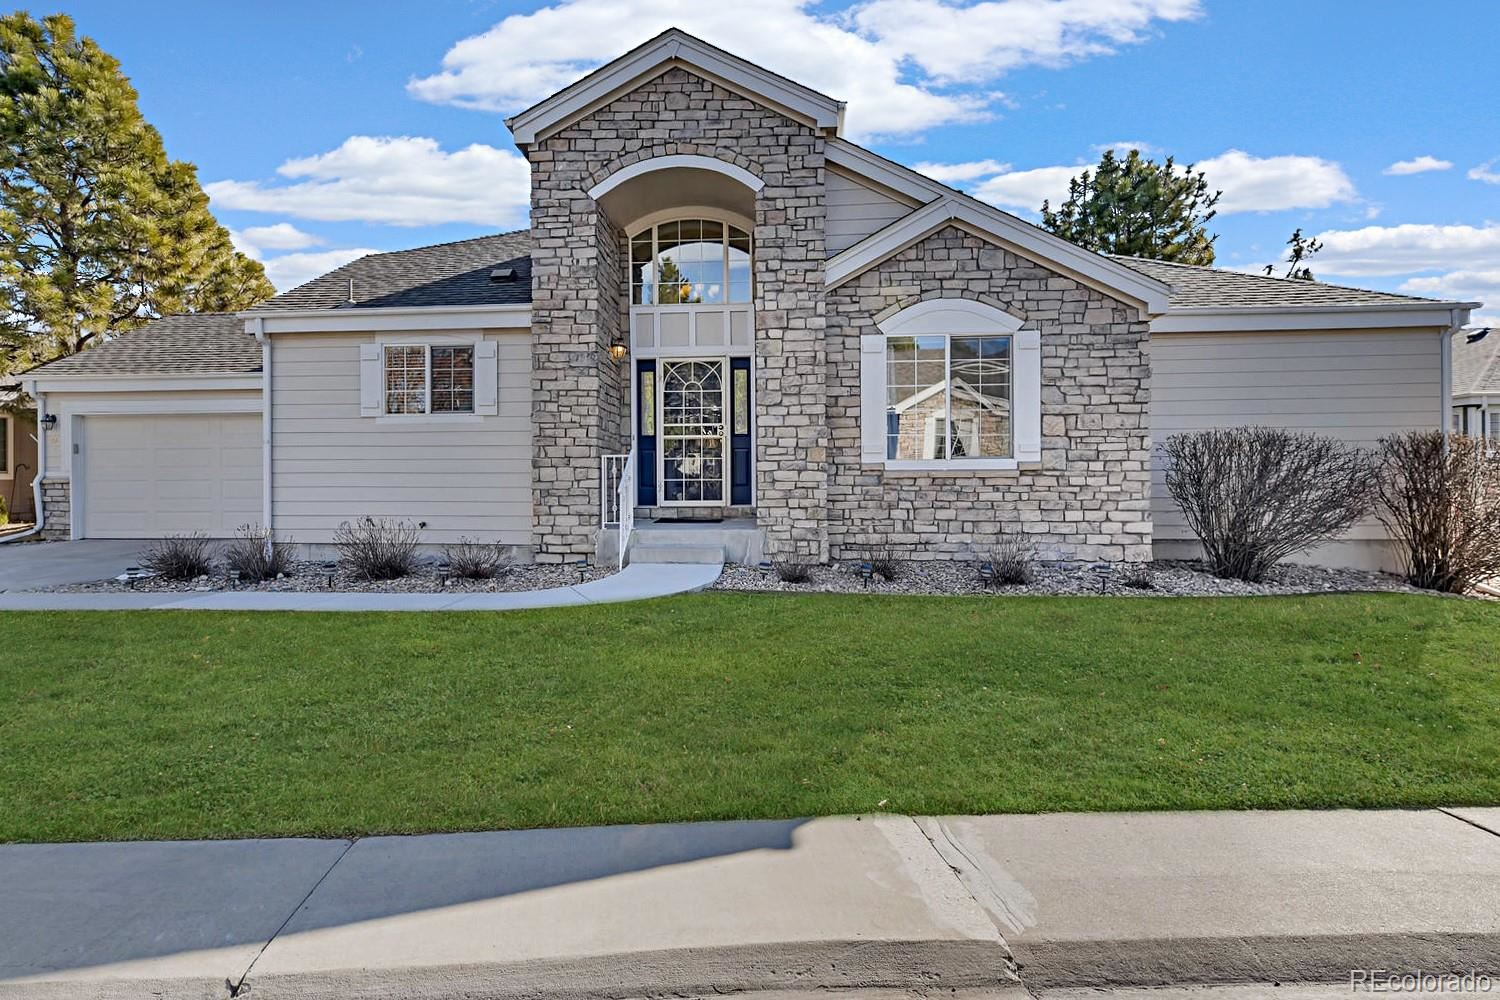 7400 W Grant Ranch Boulevard #49, Littleton, CO 80123 - #: 6189939